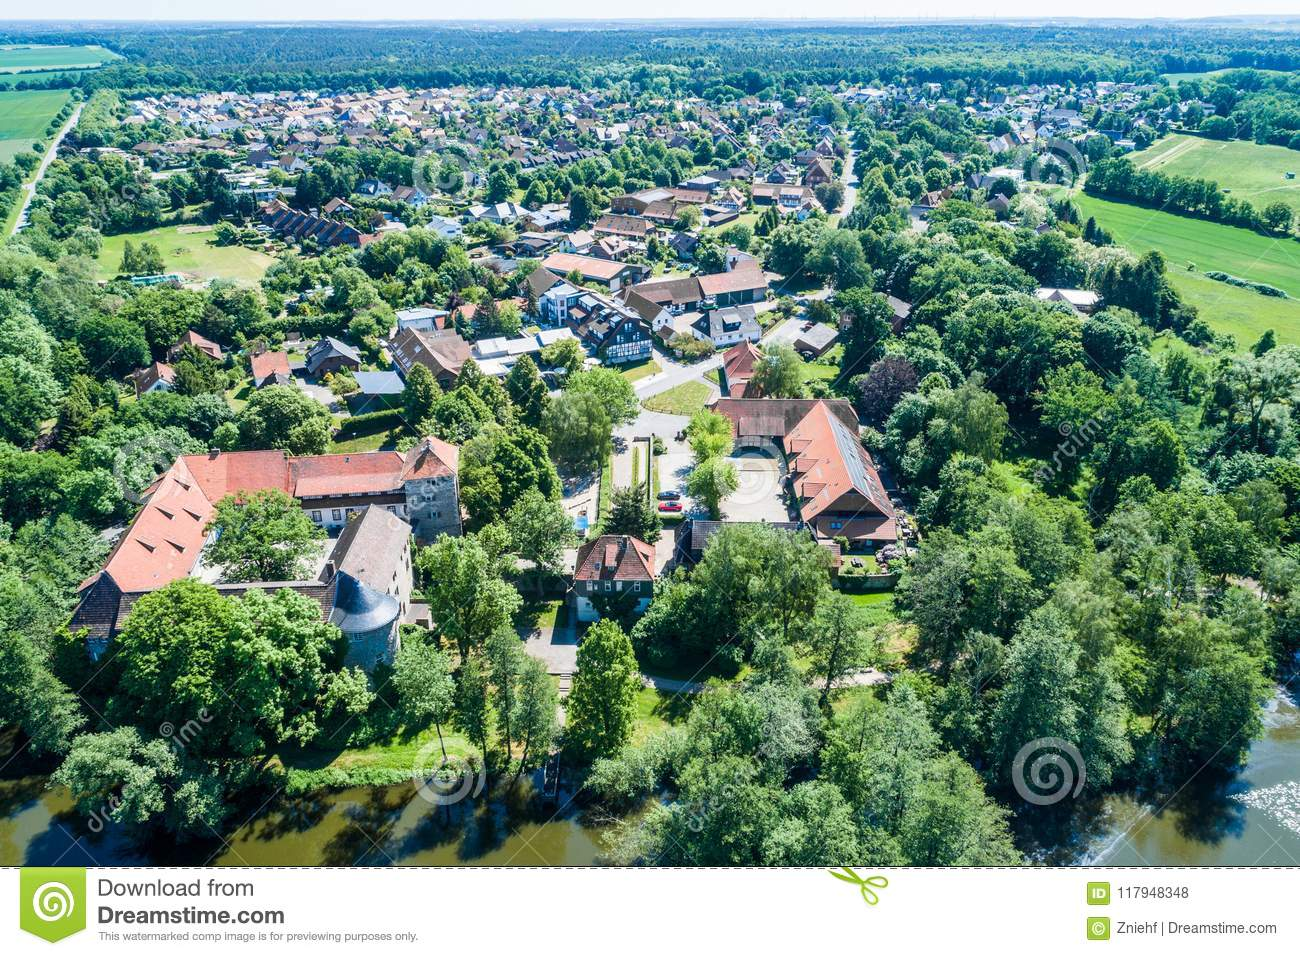 Aerial View Of A German Village With A Small Forest A Pond And A